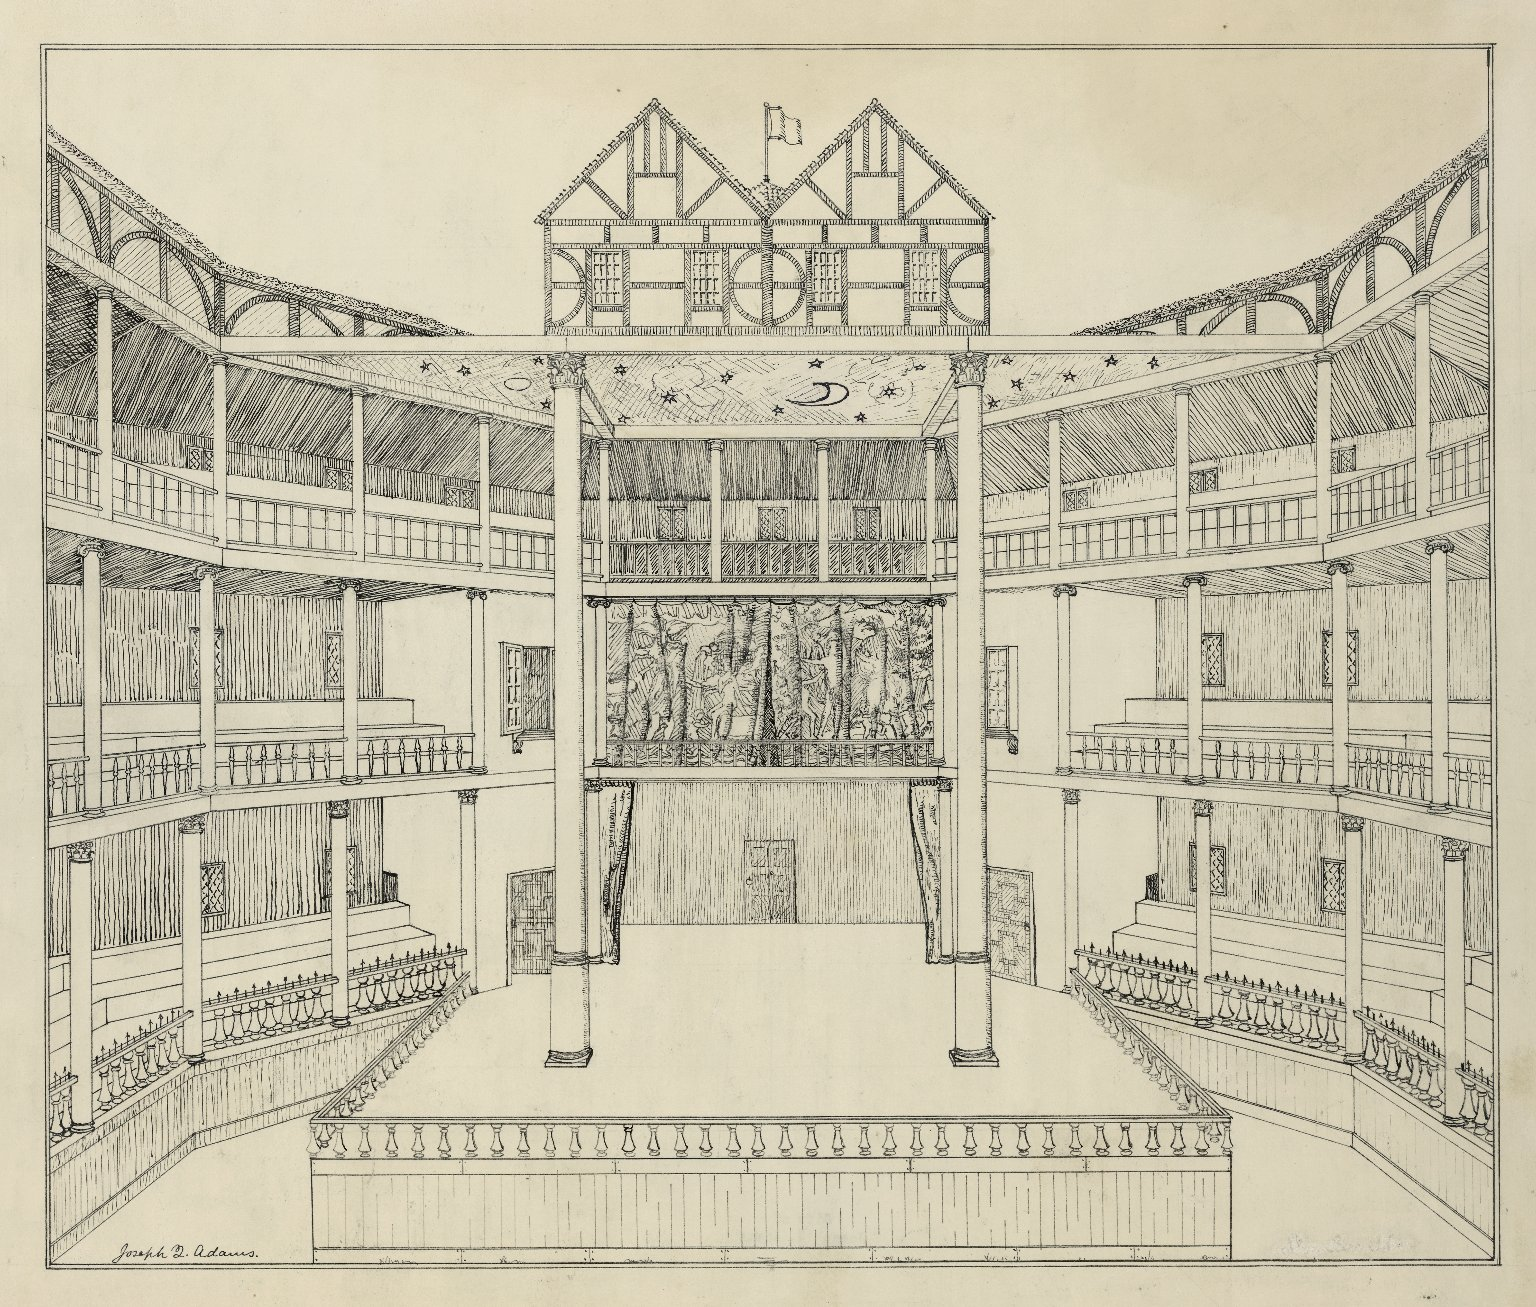 Conjectural, cut-away view of the interior of the Globe by Joseph Quincy Adams. Image courtesy of the Folger Digital Image Collection.